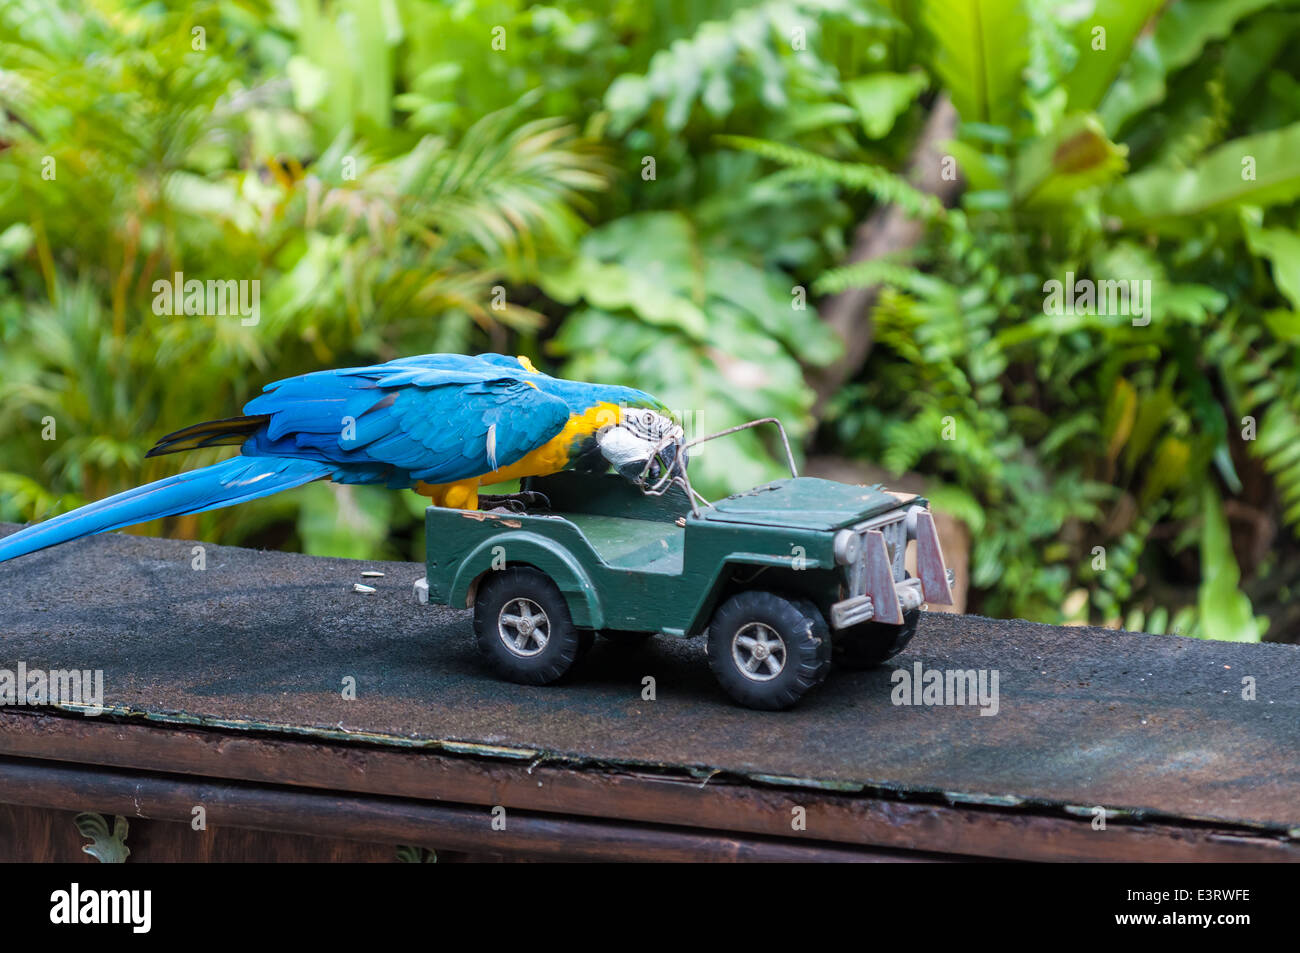 A blue and yellow macaw performs a trick involving a toy car at the KL Bird Park in Kuala Lumpur, Malaysia. - Stock Image